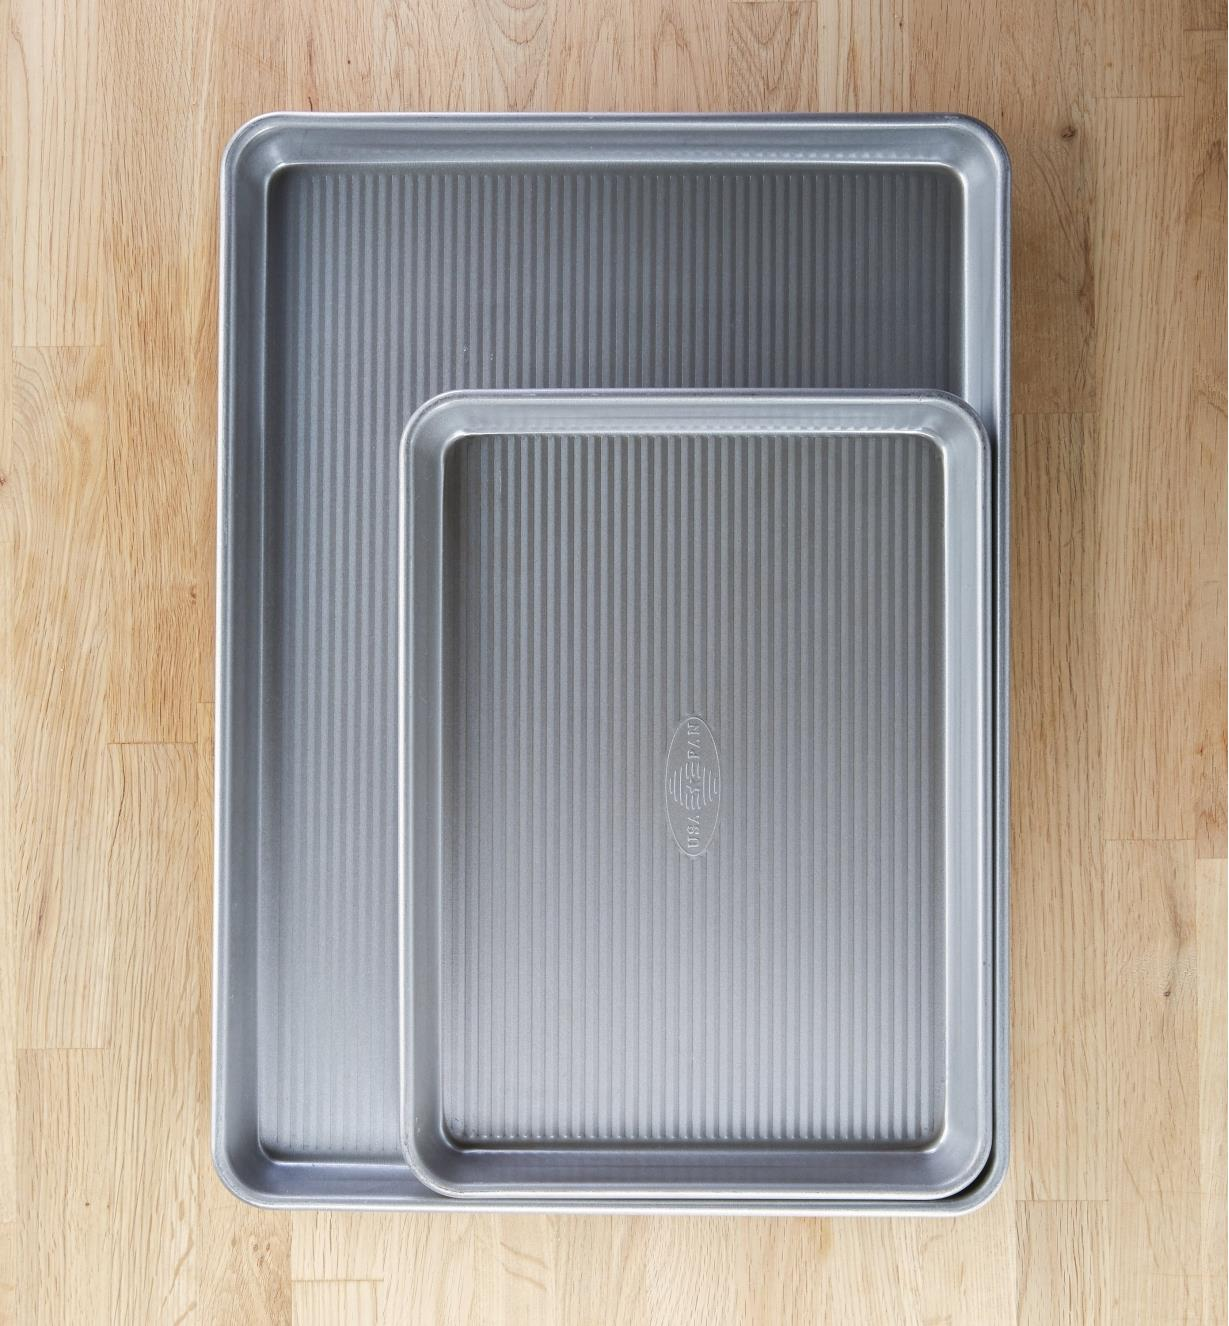 A quarter sheet baking pan nested in a half sheet baking pan to compare size